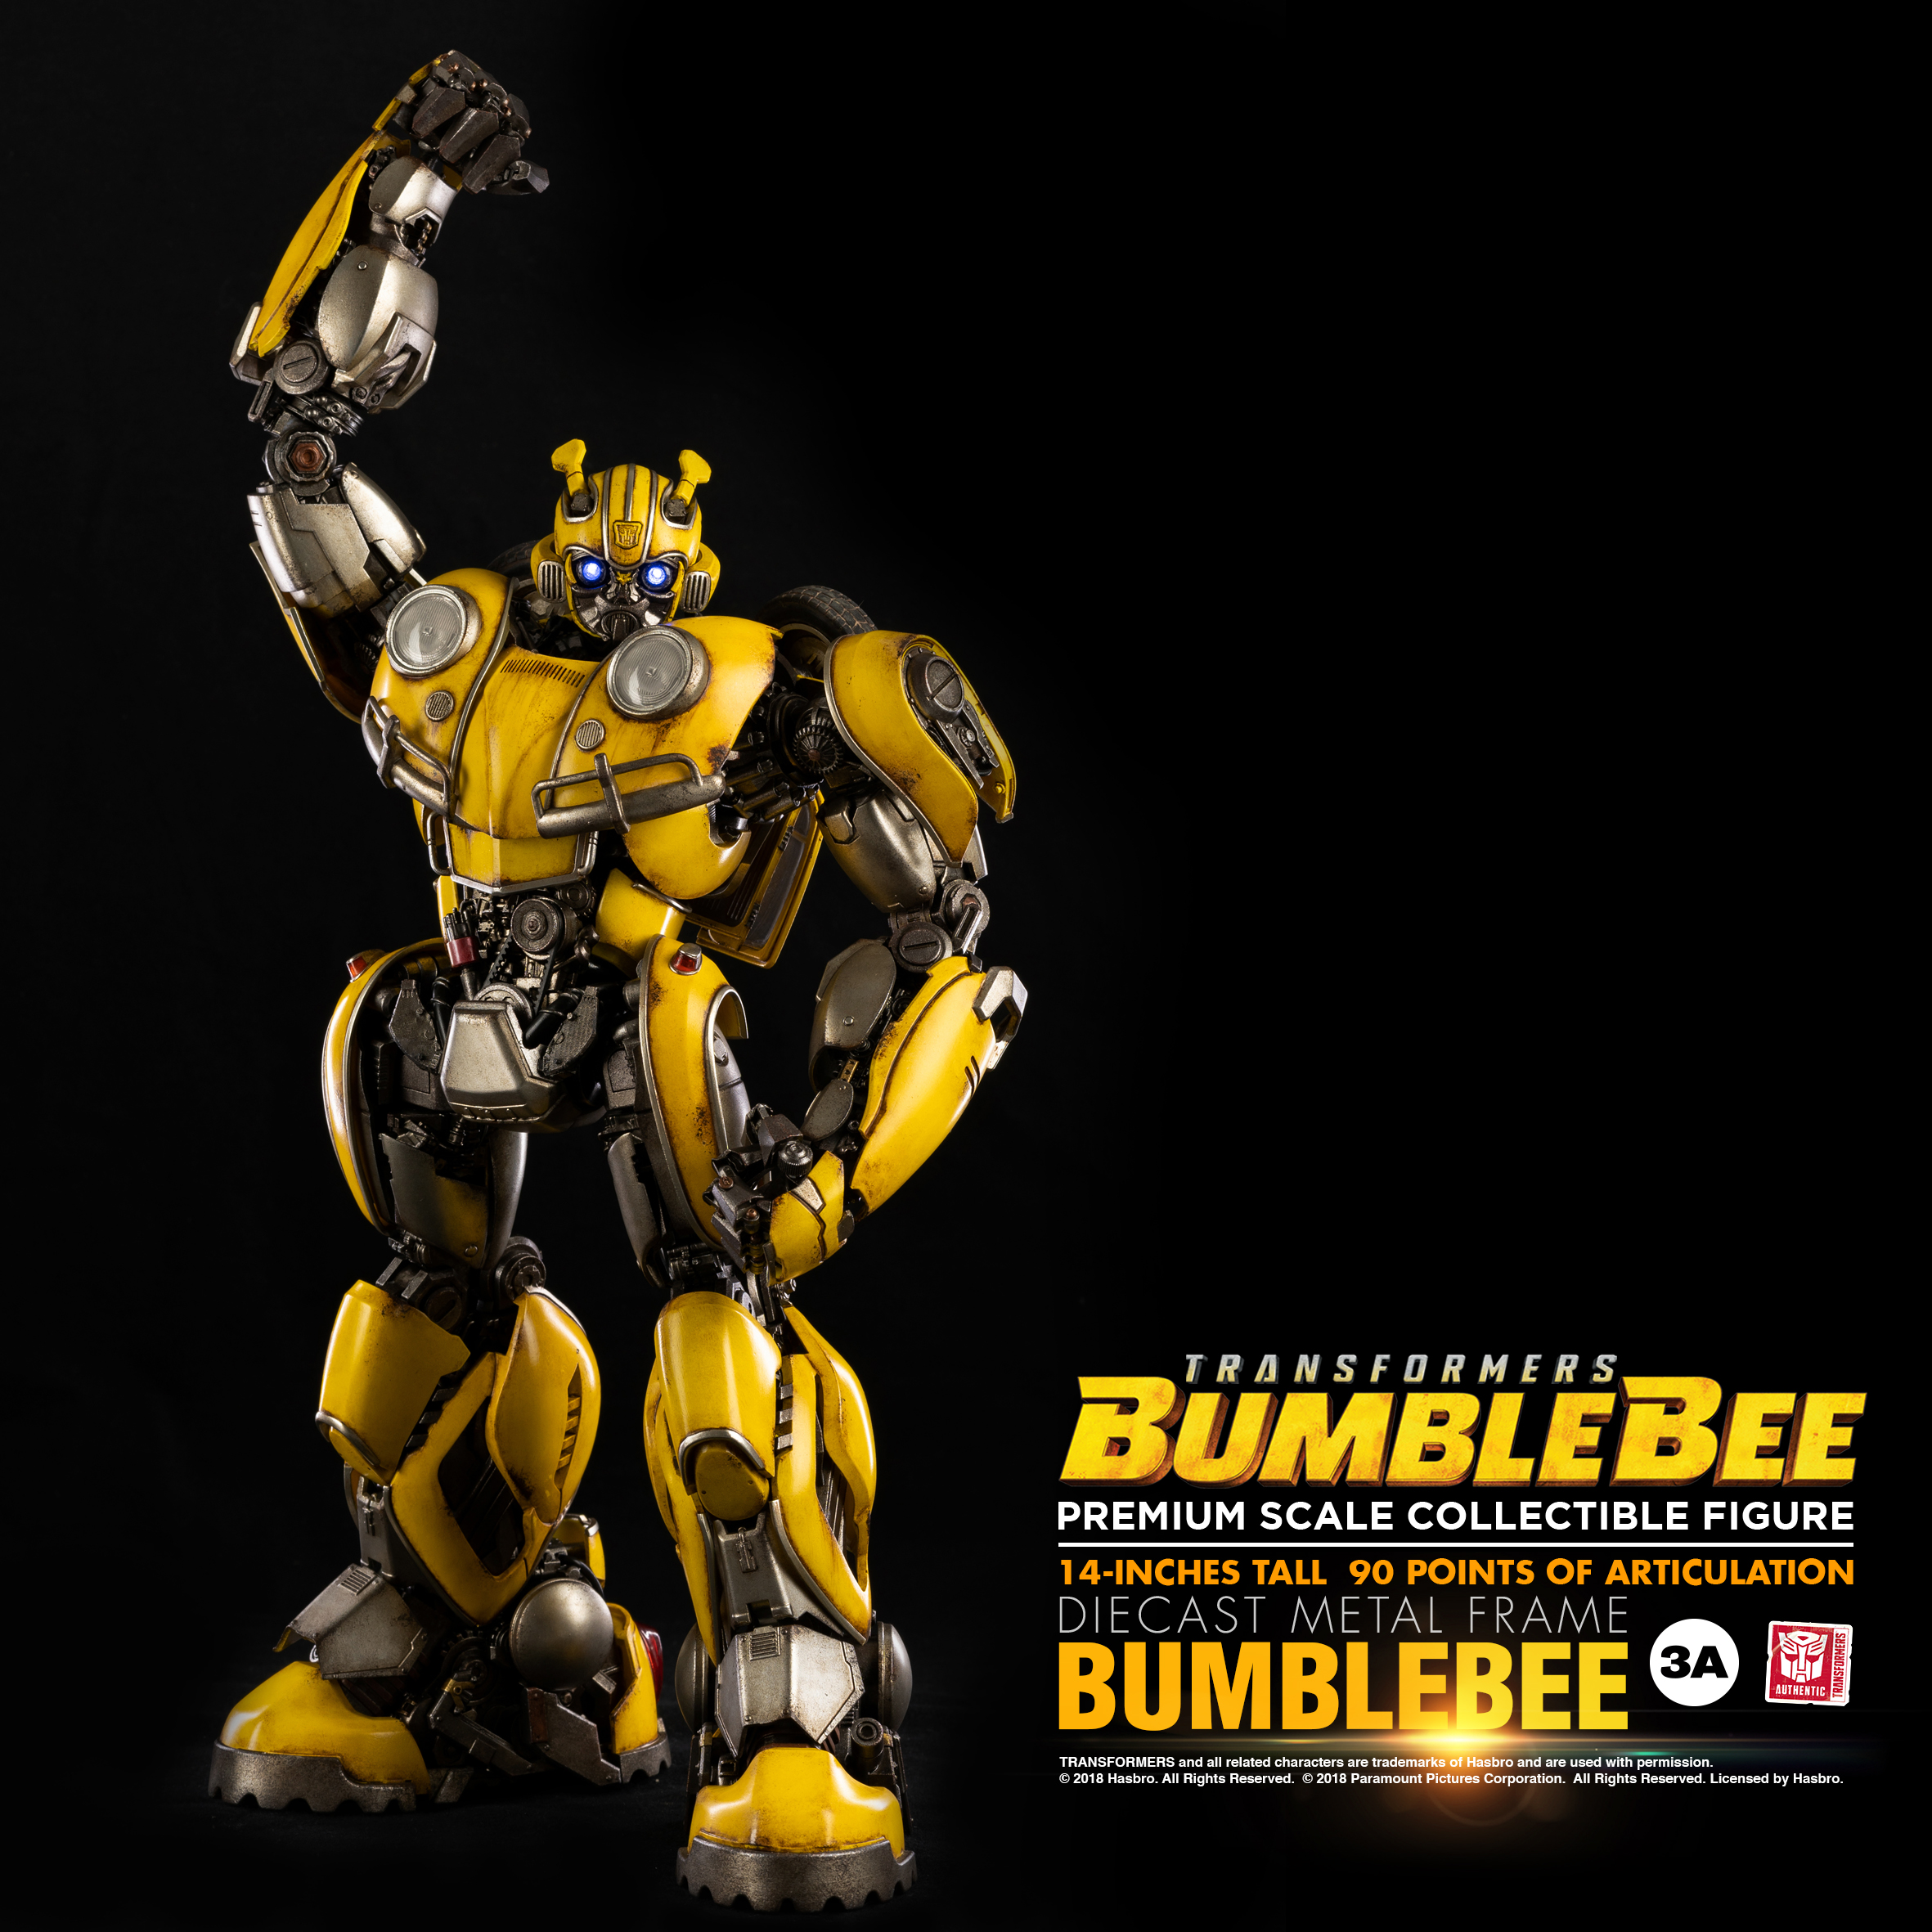 Hasbro x 3a bumblebee movie bumblebee premium scale action figure official images product - Images of bumblebee from transformers ...